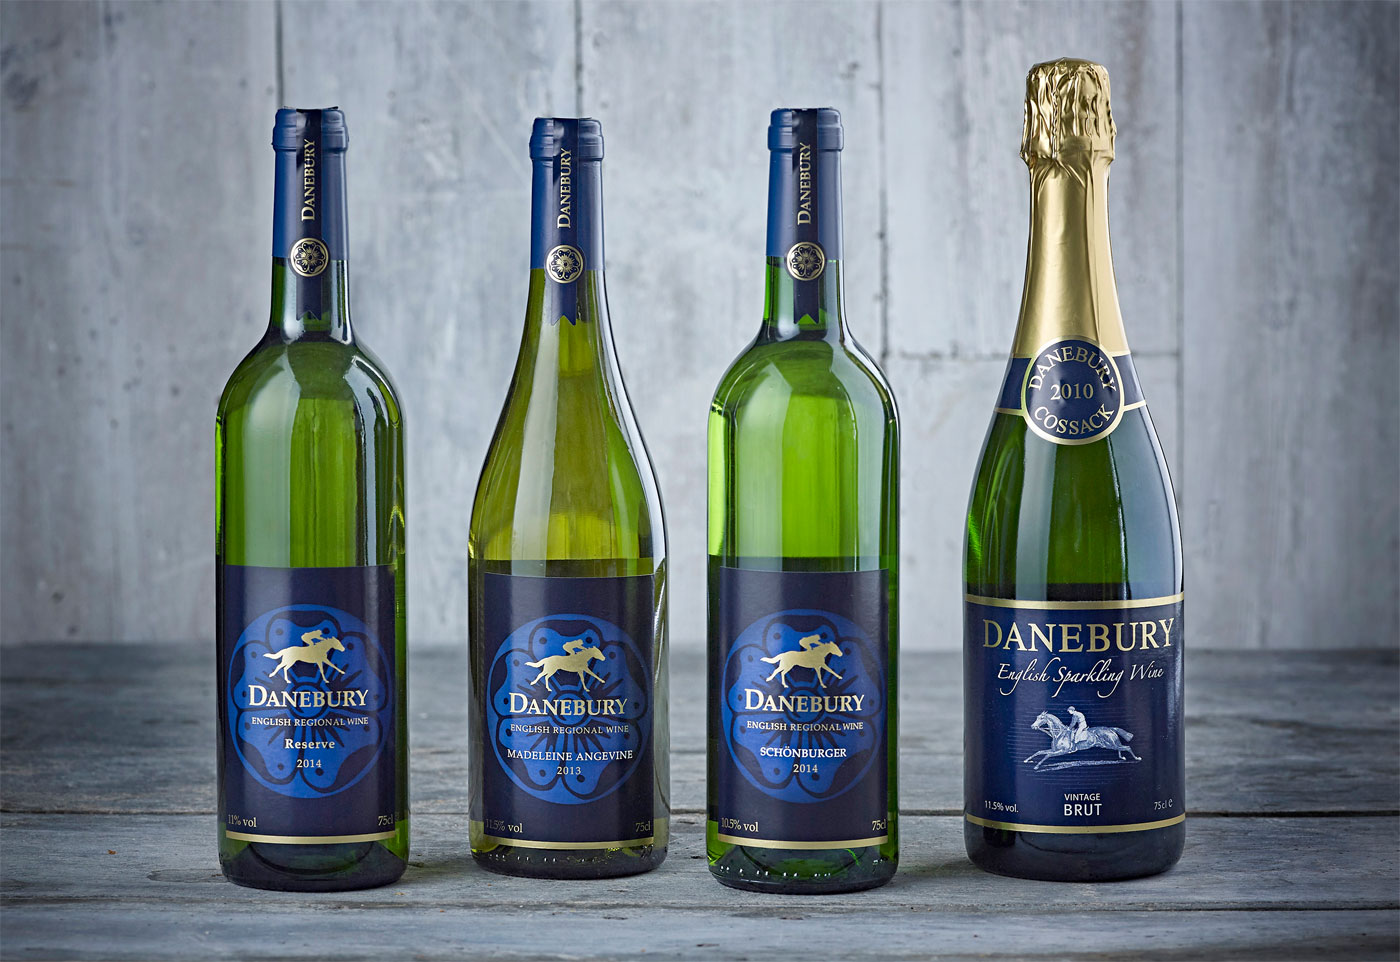 We Take a Look at the Fine English Wines from Danebury Vineyard 3